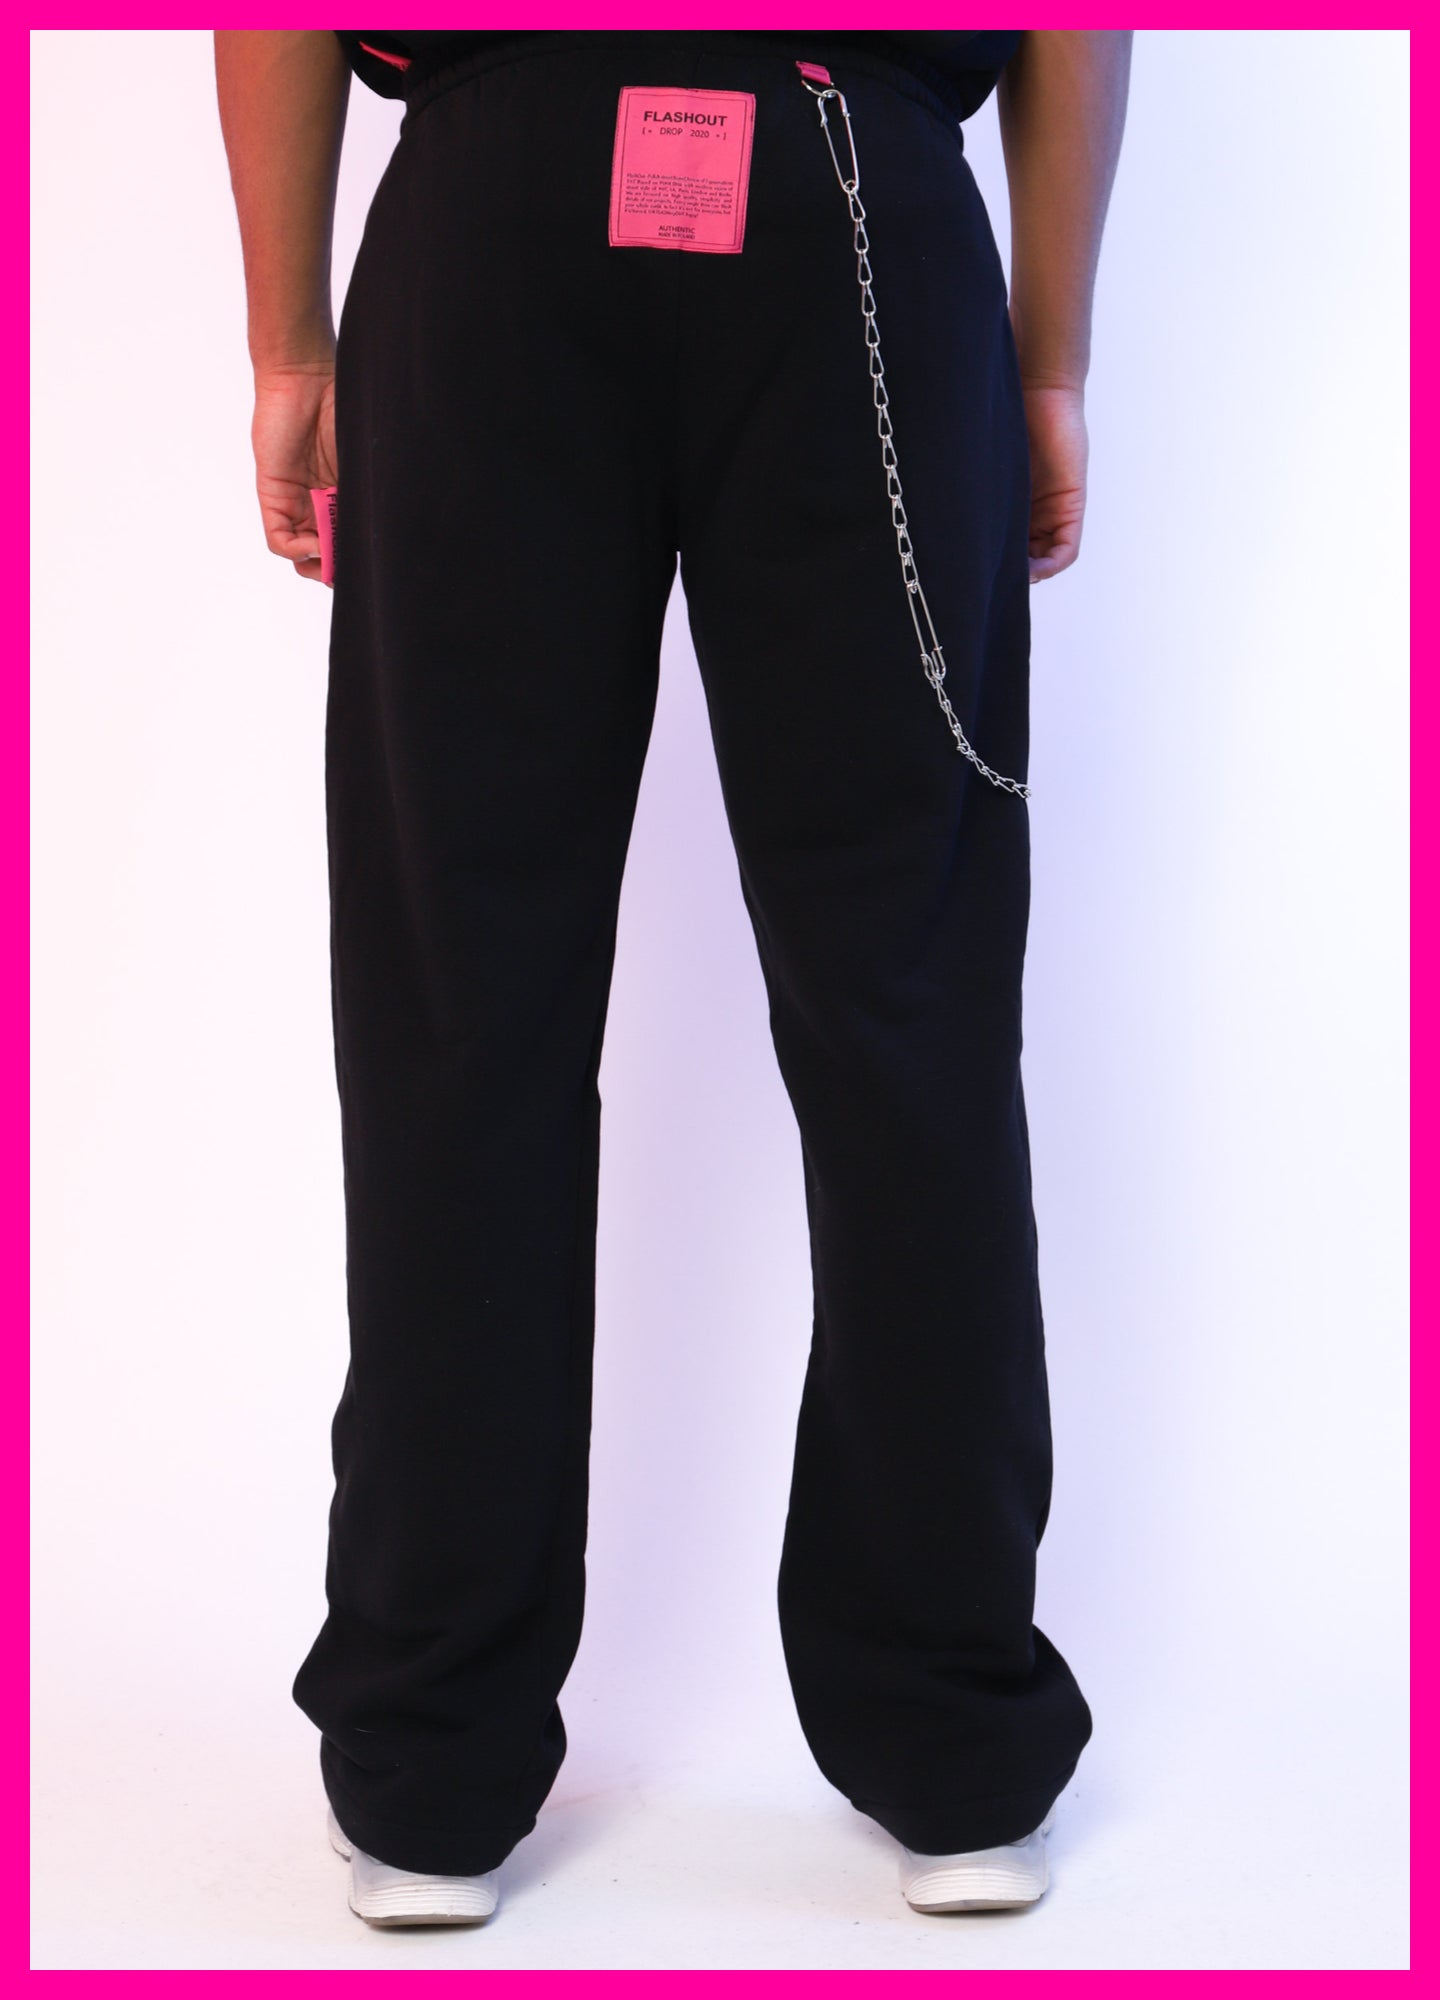 [ * UNISEX * ] WIDE BLACK PANTS FF LOGO - Flashout Store